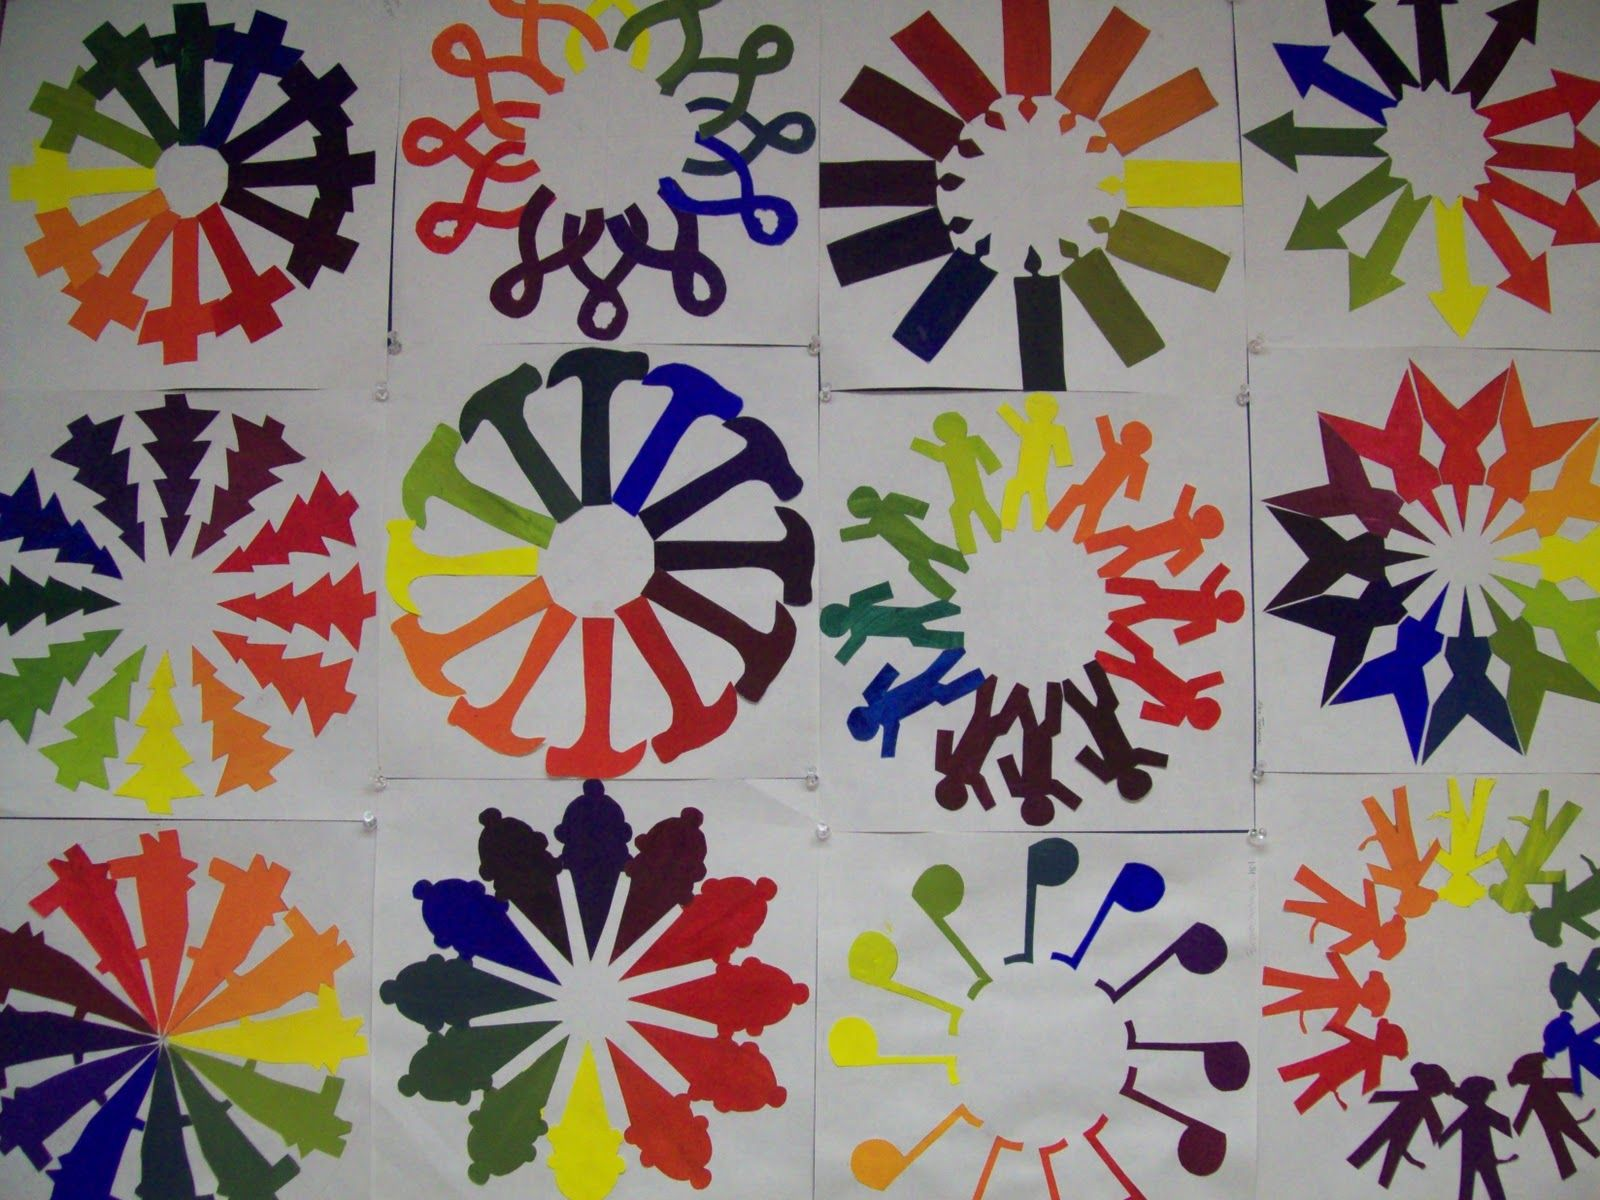 Color Wheel Design Ideas design a motif to fit in the wedge shape of the color wheel and